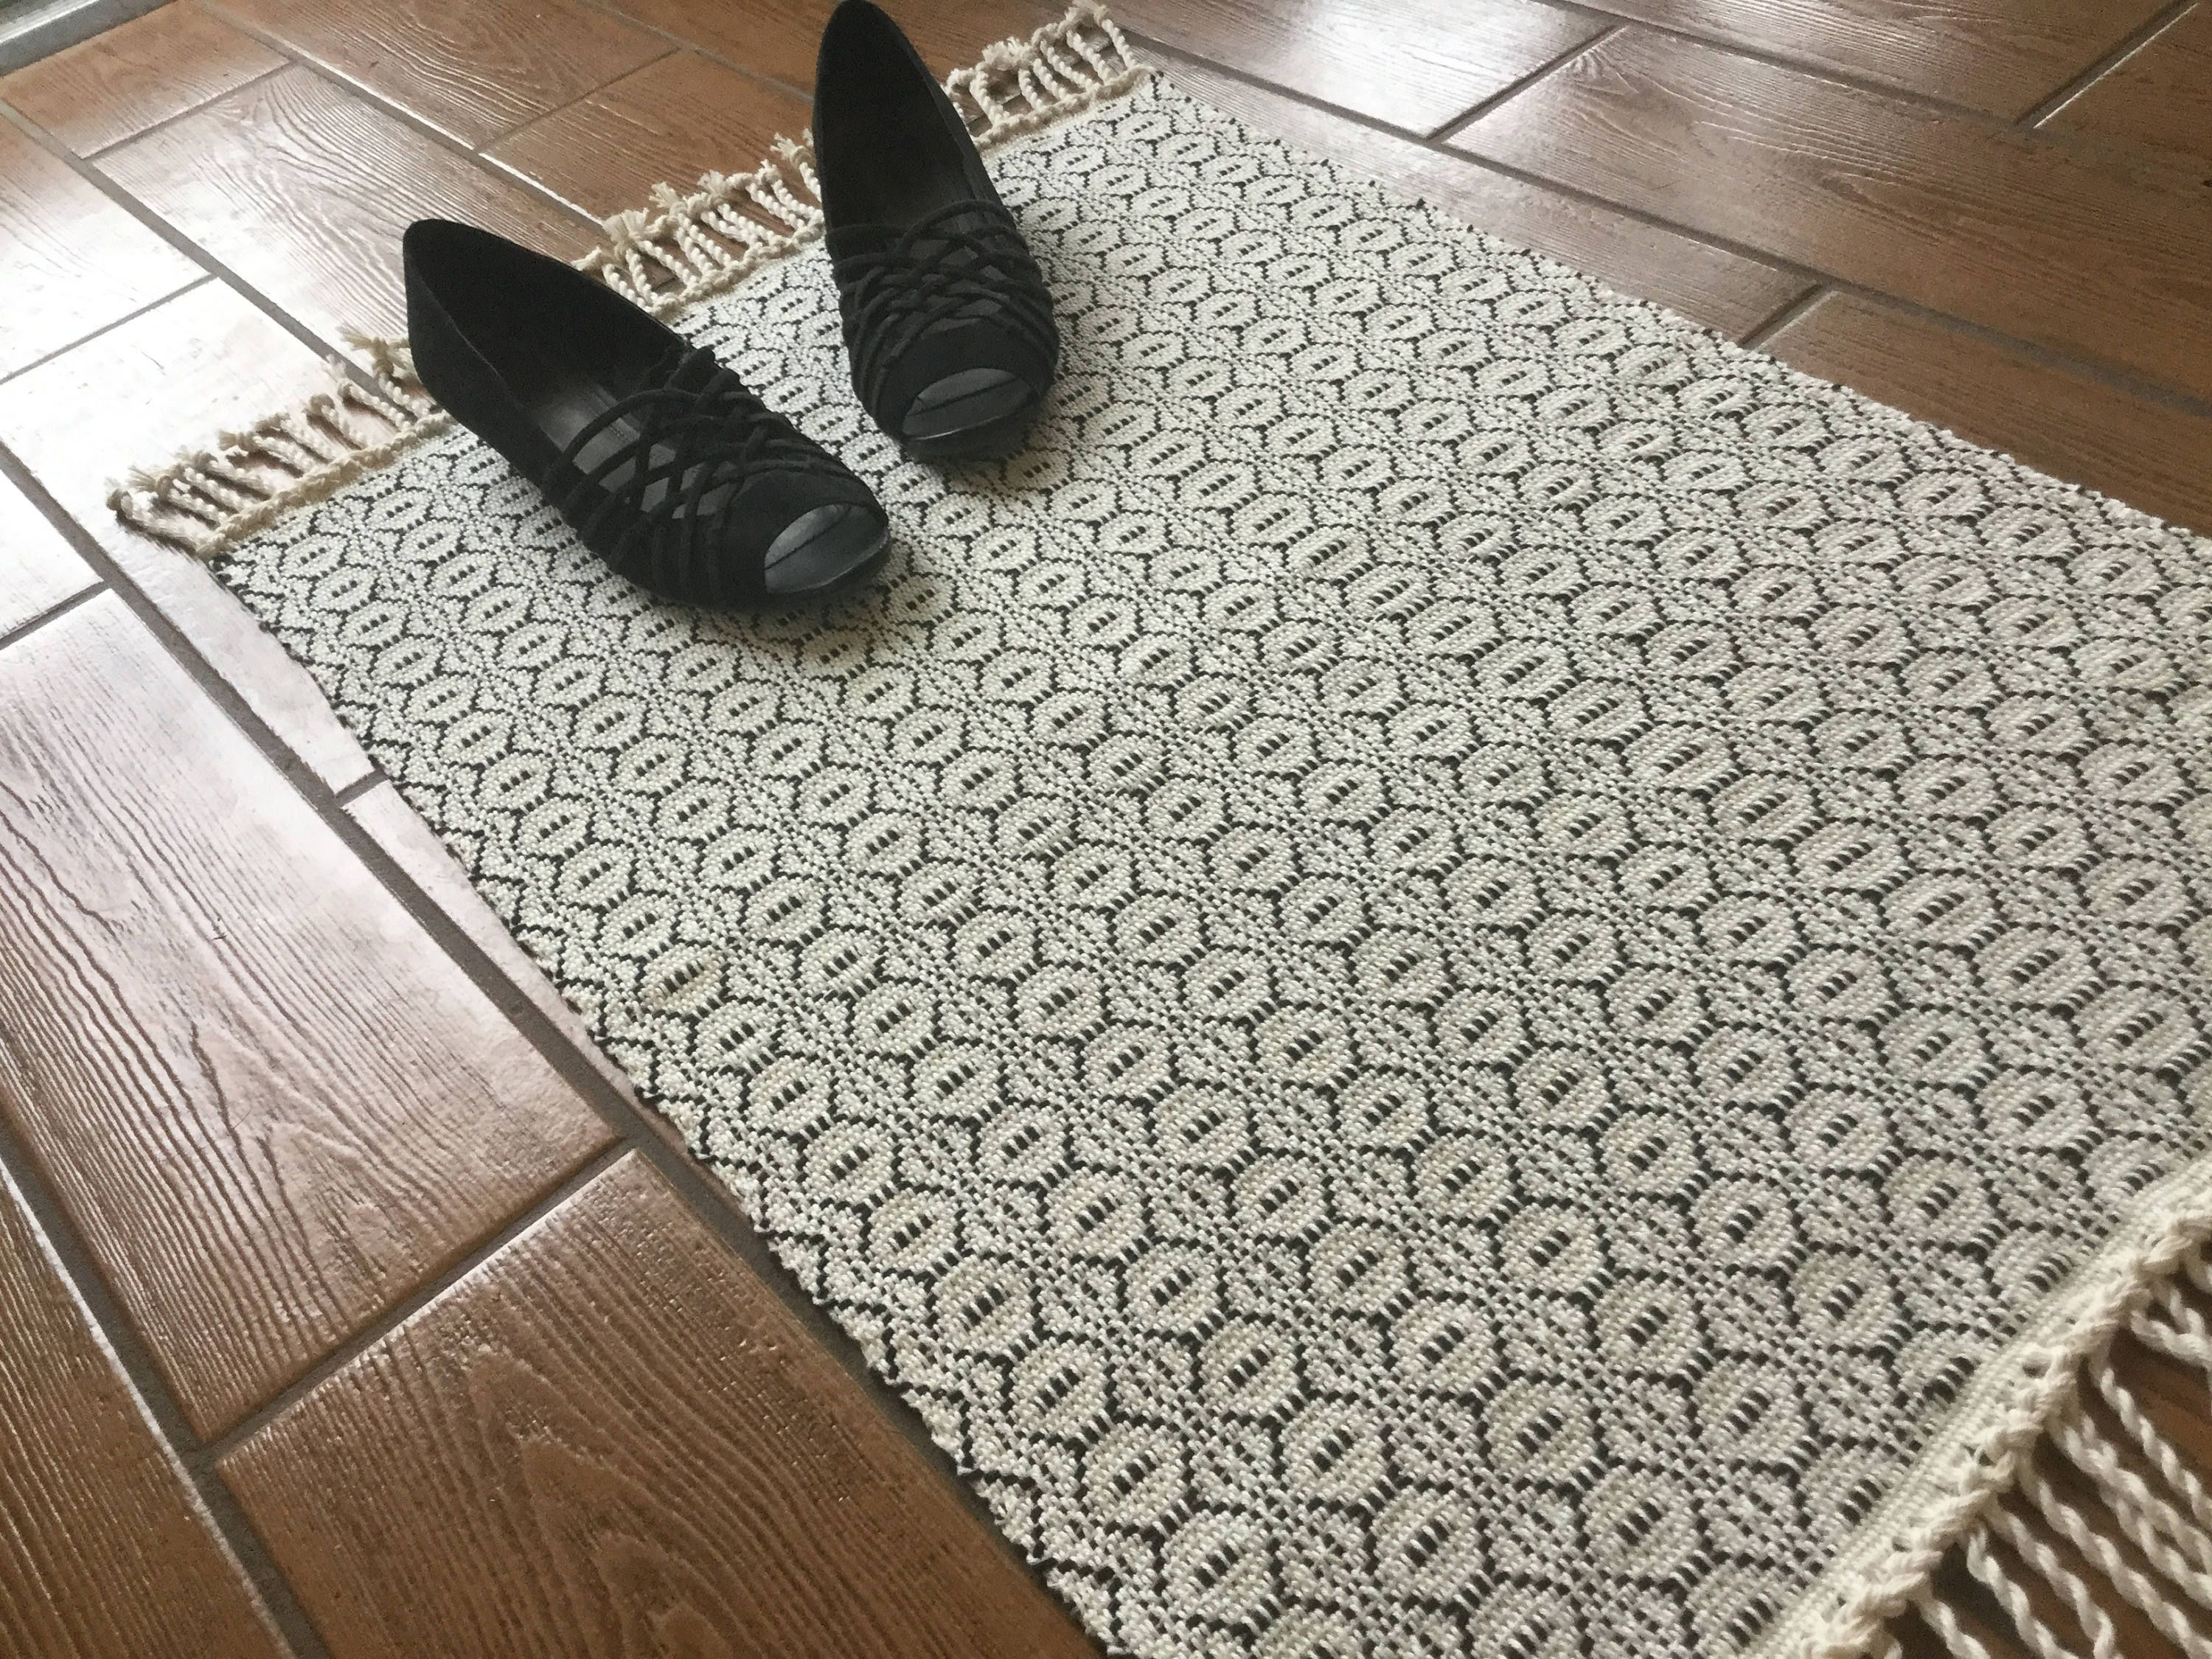 Farmhouse Kitchen Rug Black And White Rug Handwoven Cotton Rug